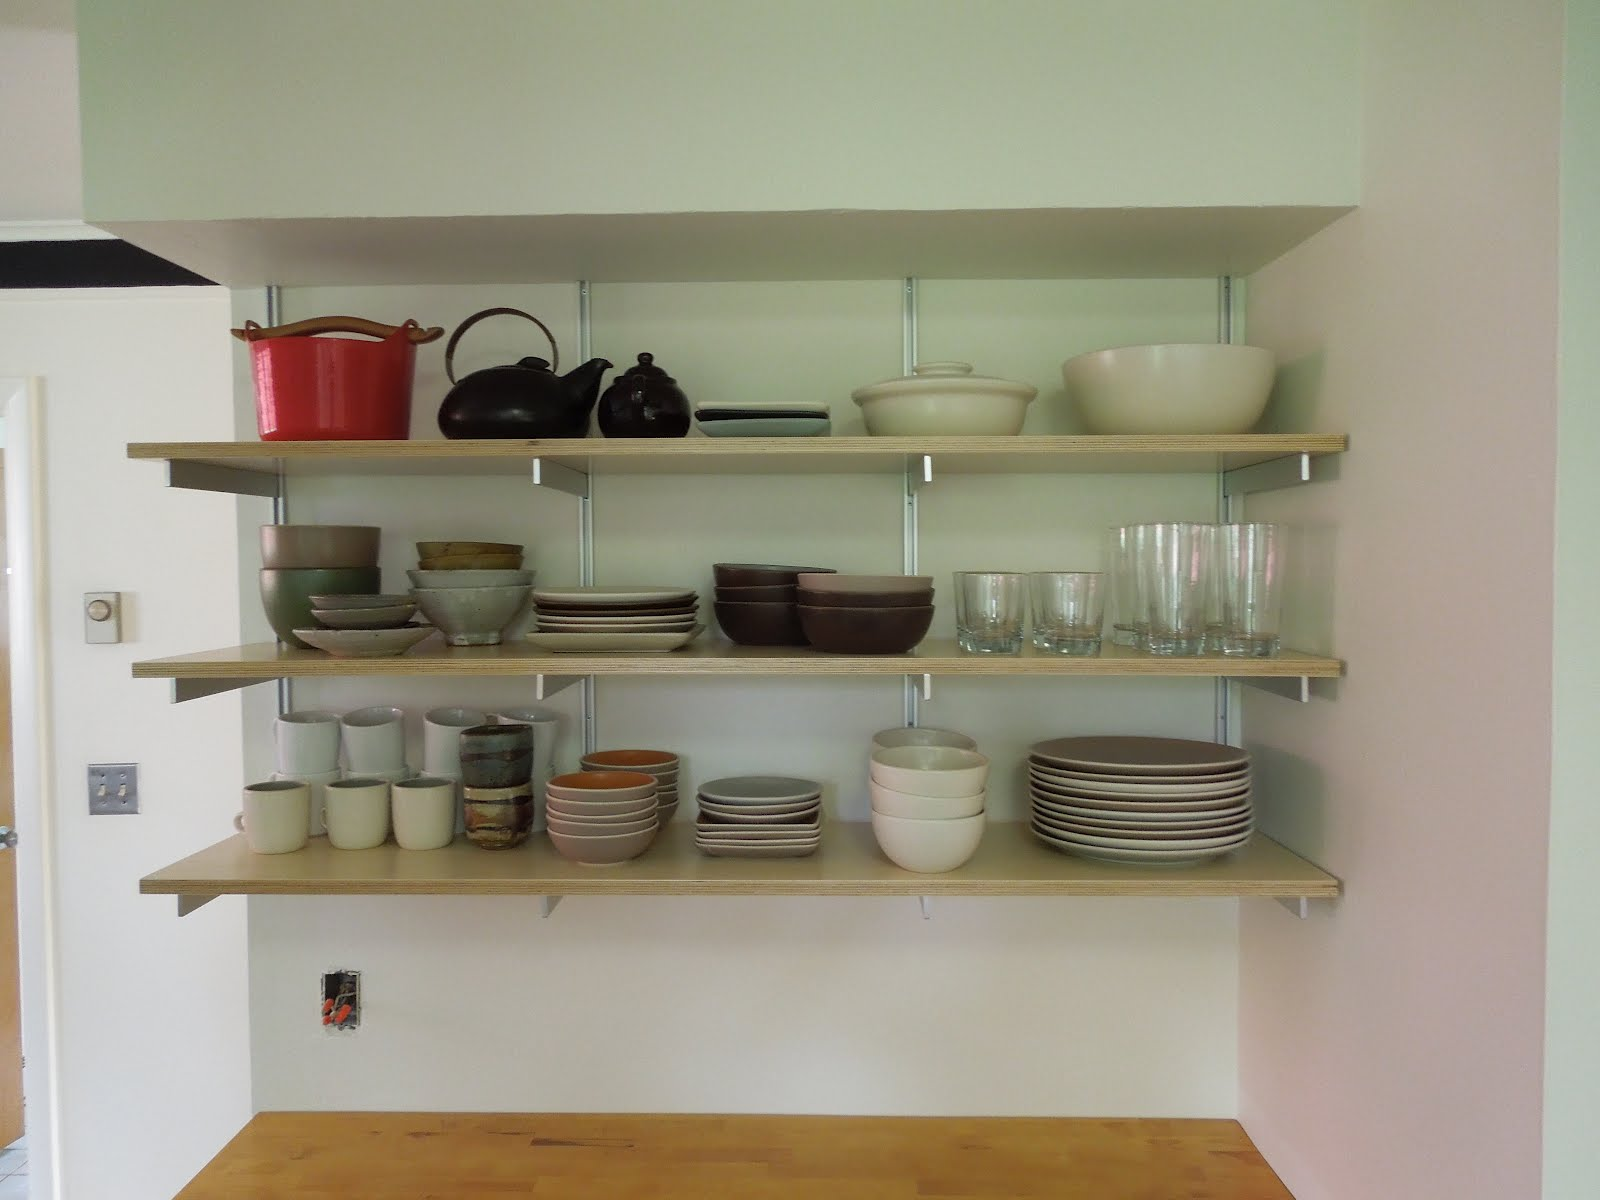 Hanging Shelves In A Small Kitchen